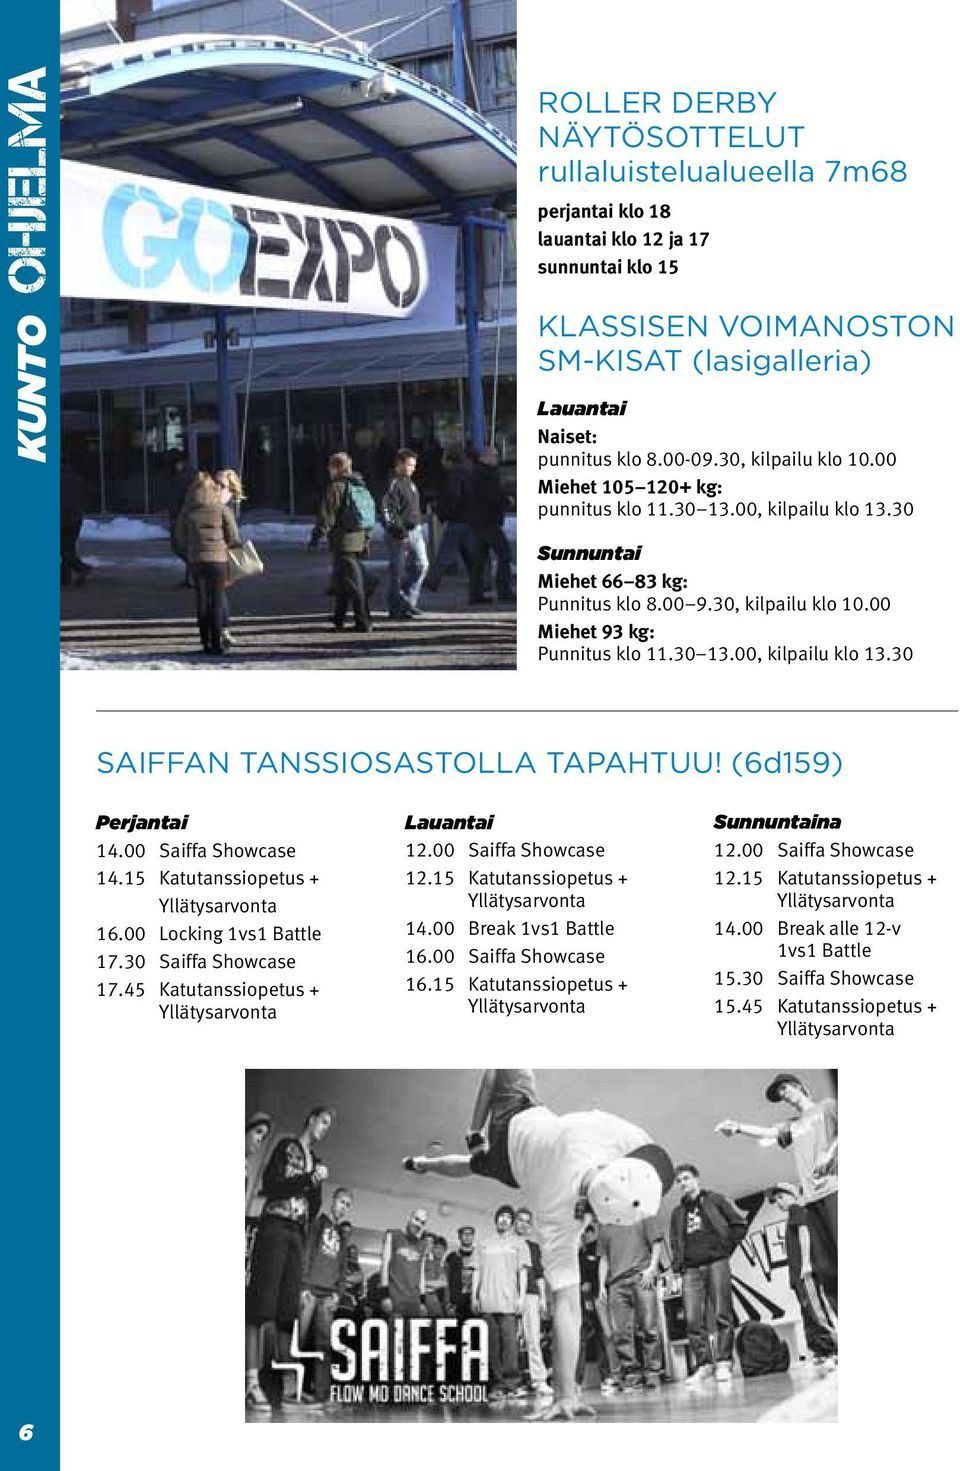 30 13.00, kilpailu klo 13.30 SAIFFAN TANSSIOSASTOLLA TAPAHTUU! (6d159) Perjantai 14.00 Saiffa Showcase 14.15 Katutanssiopetus + Yllätysarvonta 16.00 Locking 1vs1 Battle 17.30 Saiffa Showcase 17.